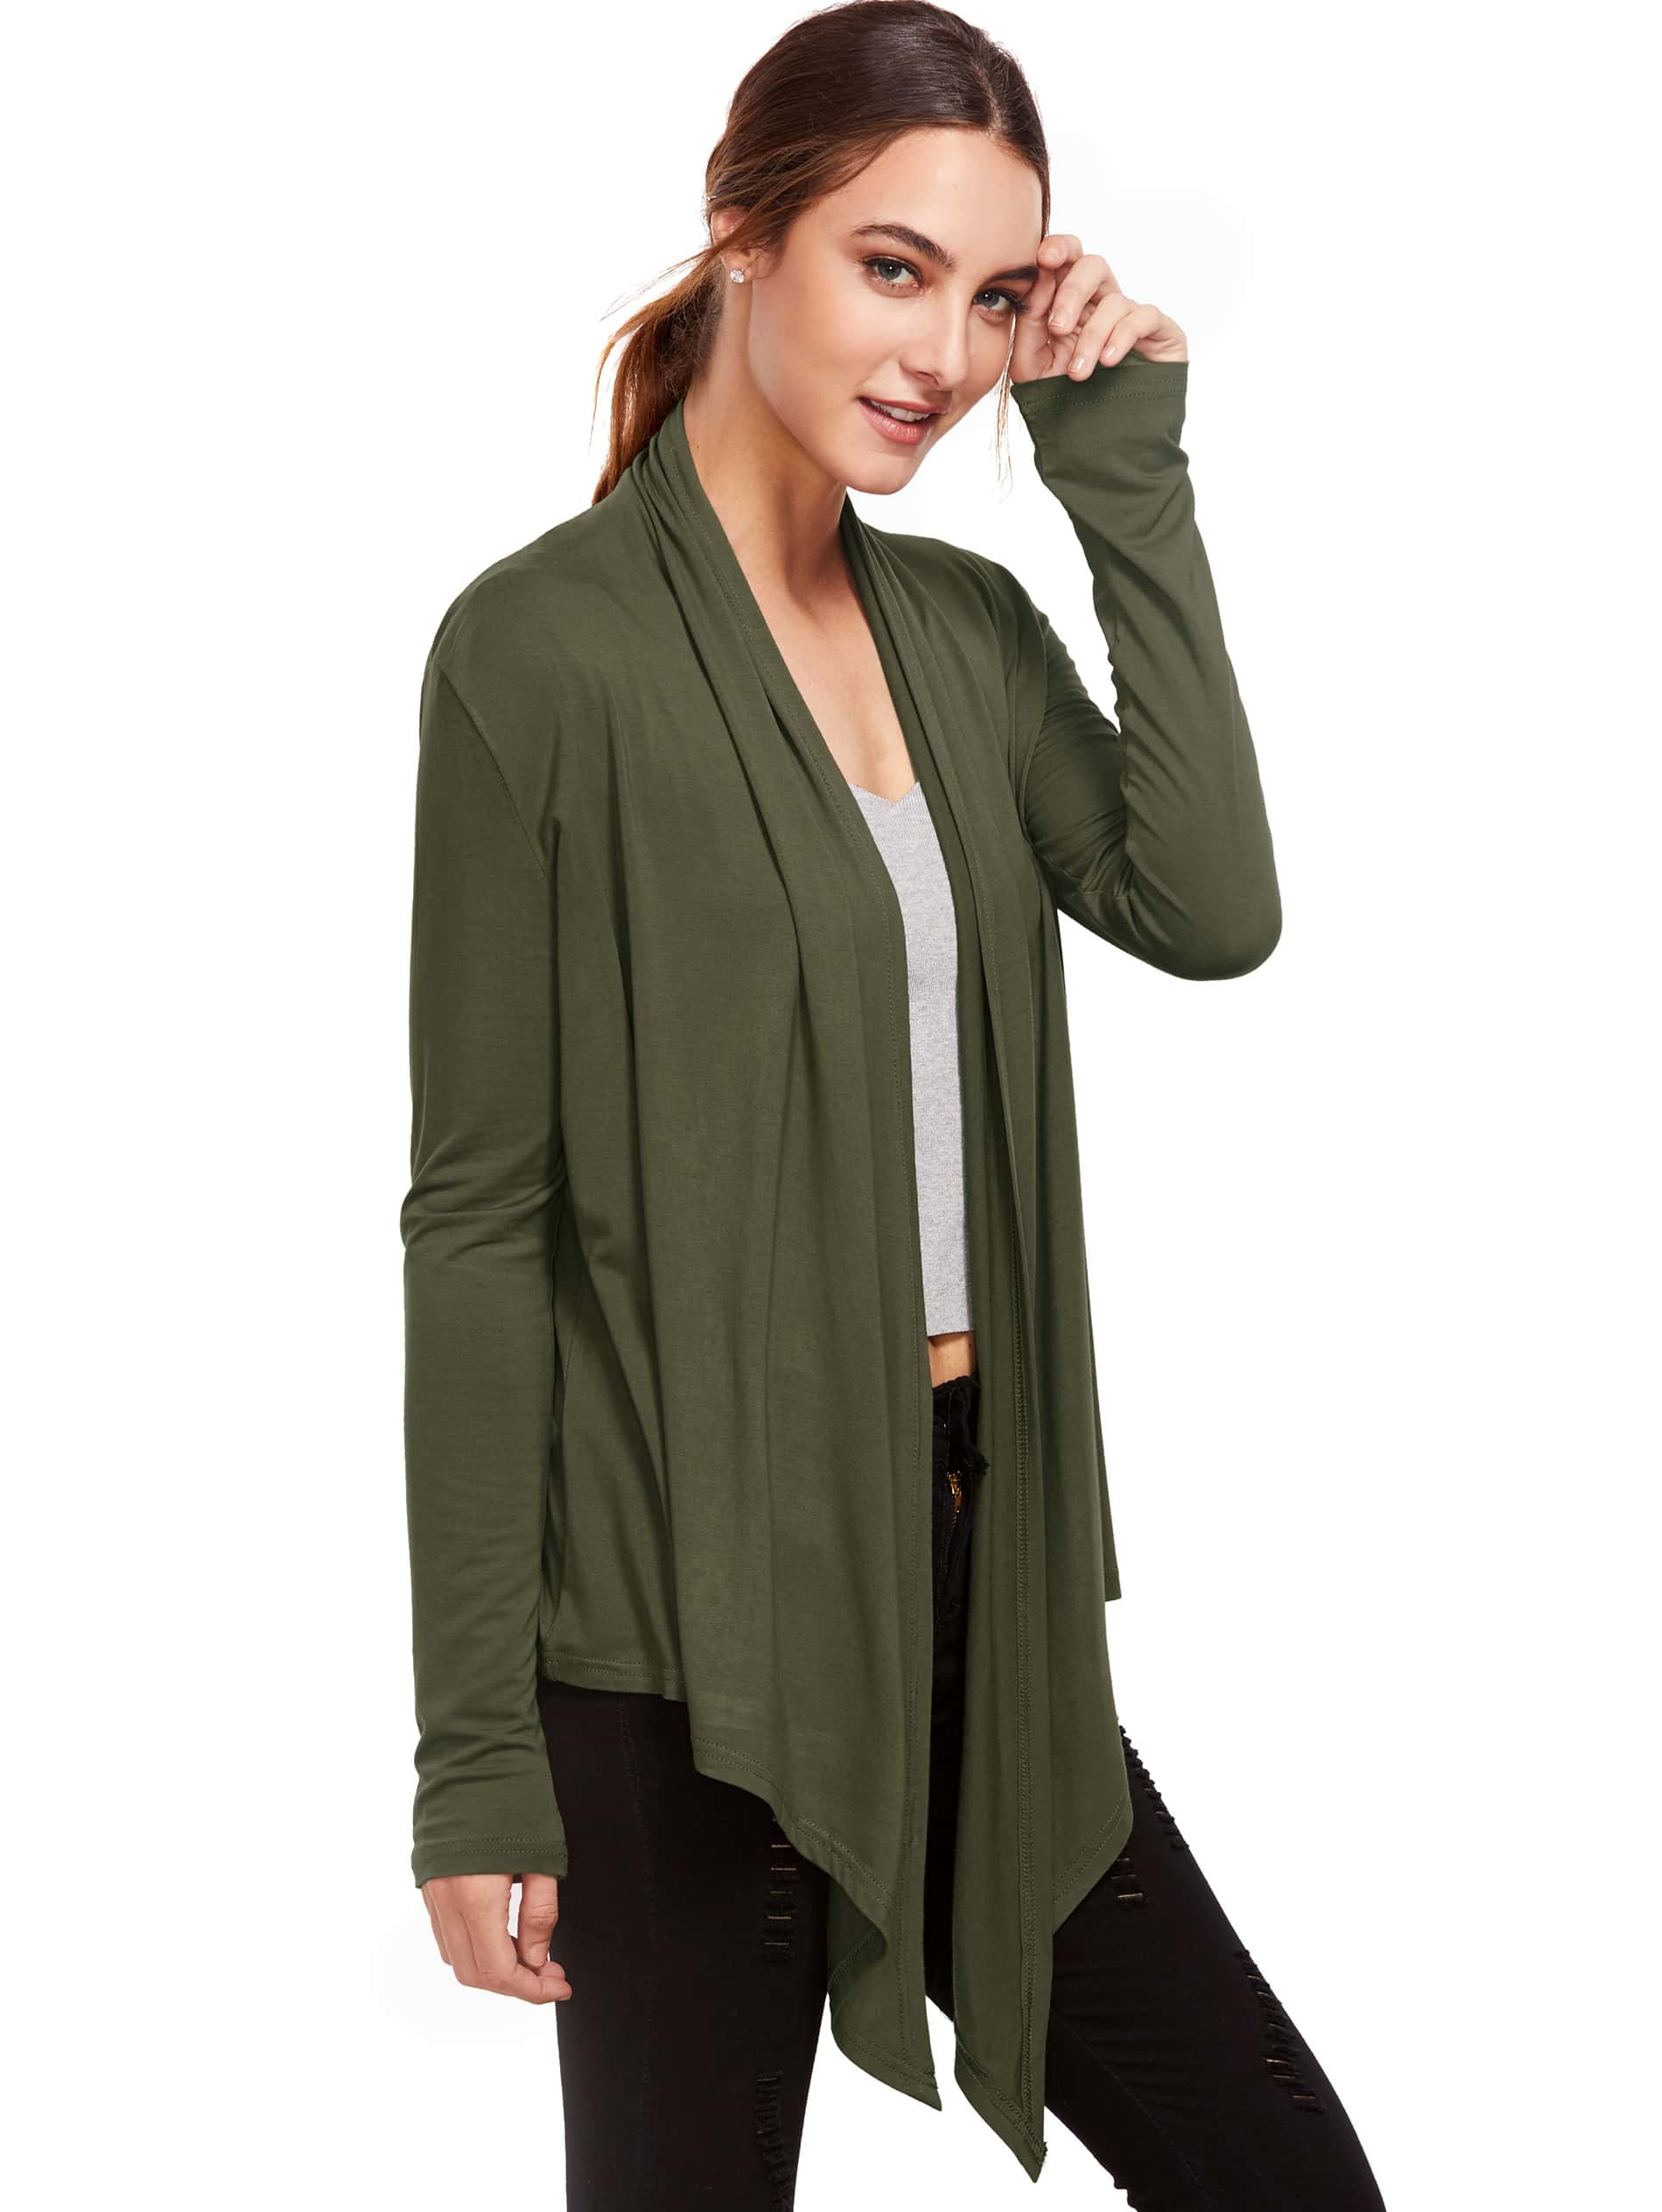 Army Green Open Front Drape Cardigan Sweater inc new gray women s size small ps petite open front ribbed cardigan sweater $79